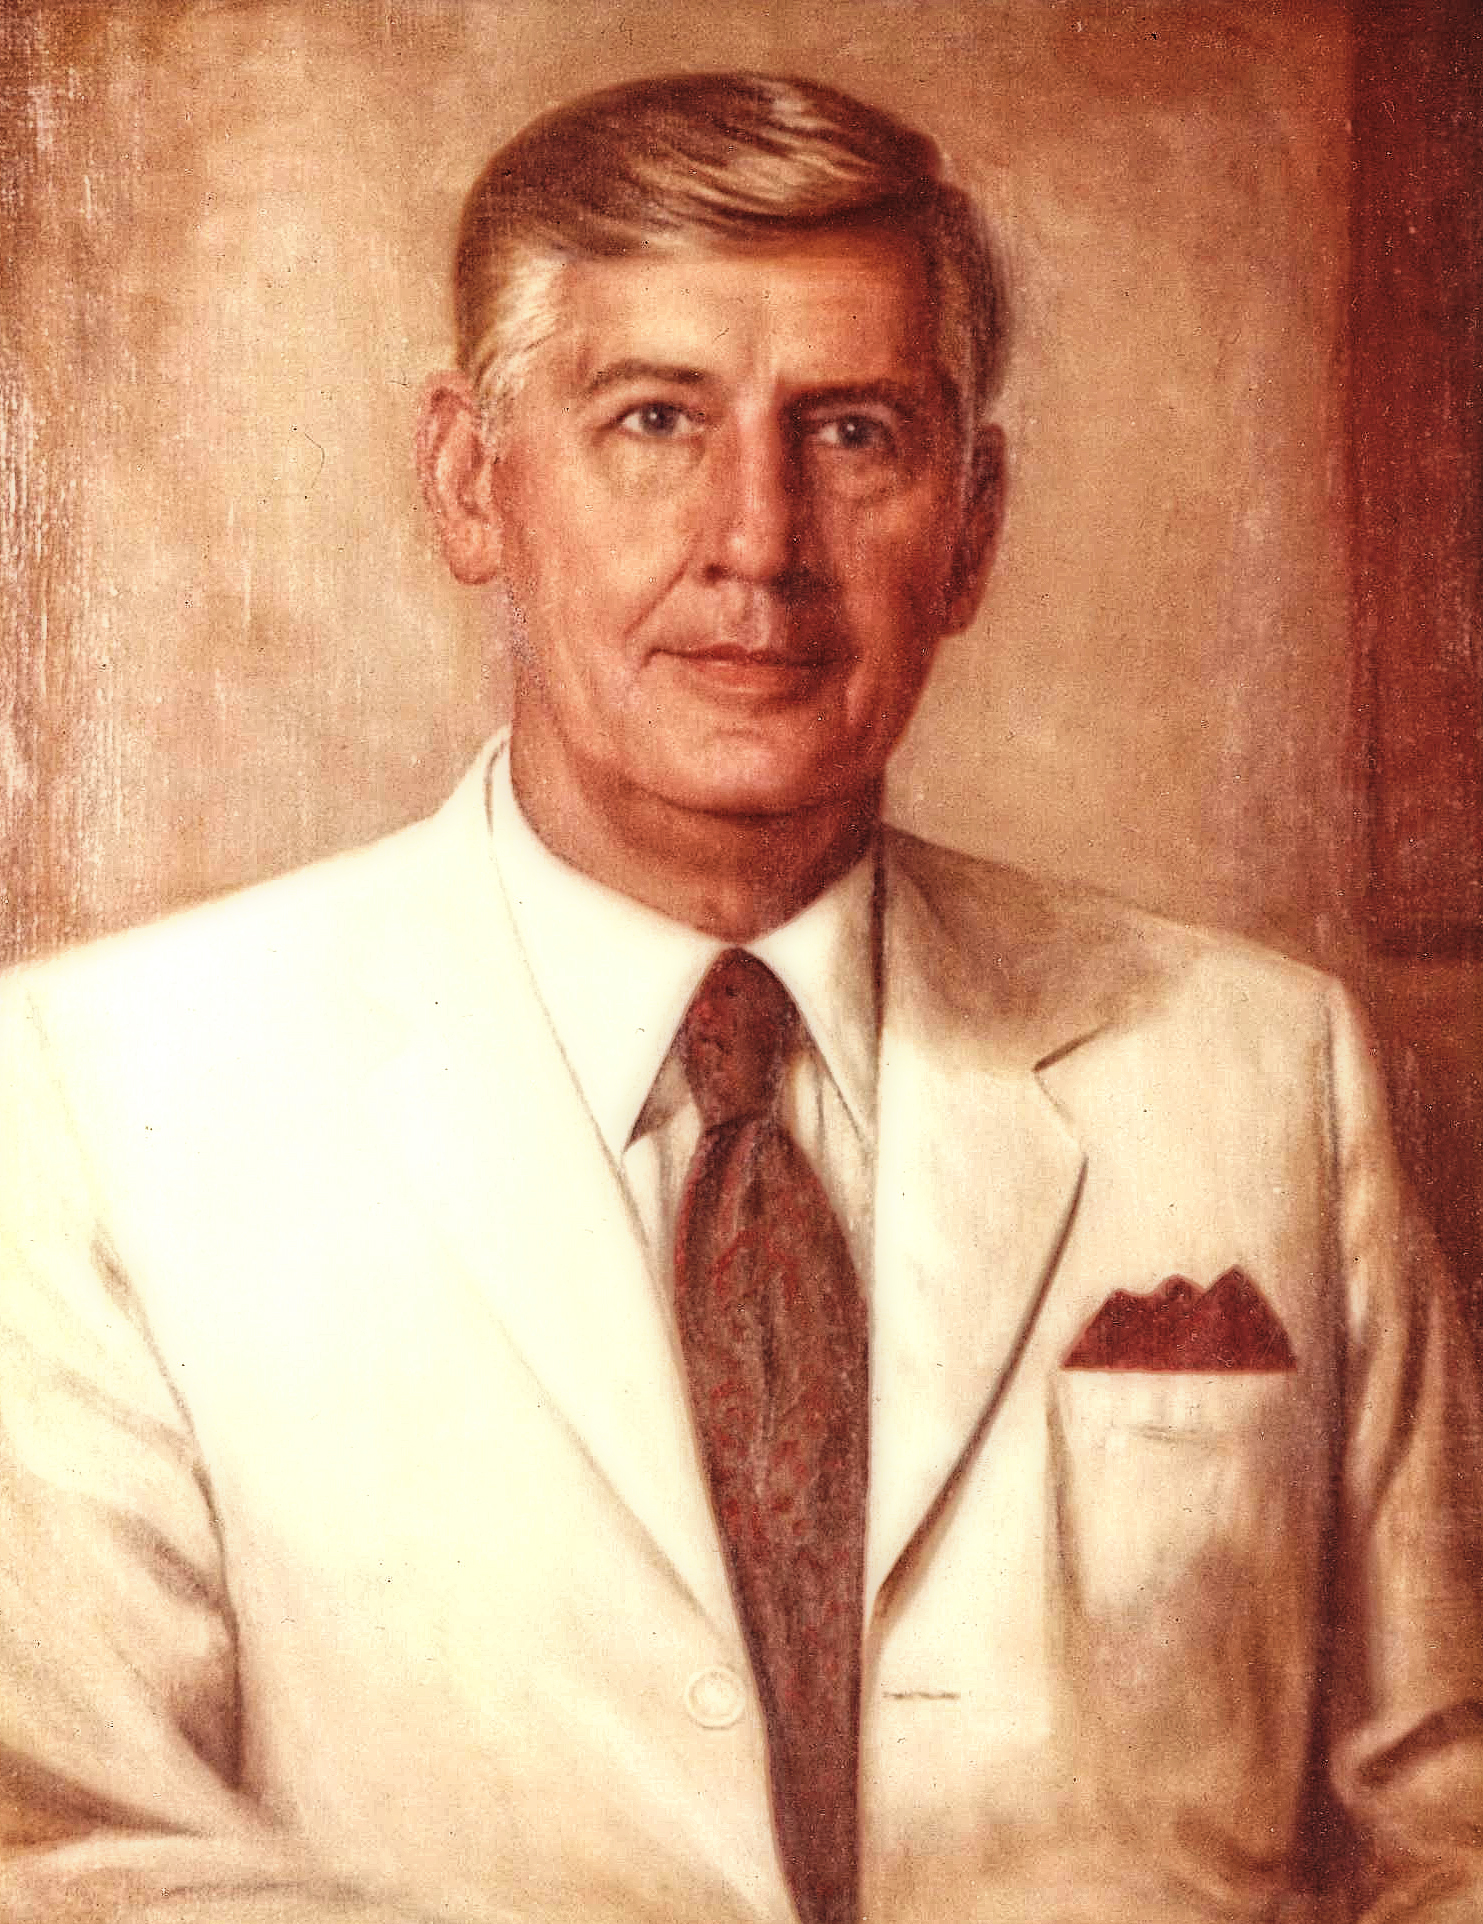 William Banks, DVM 14th president of the Southwestern Chapter (term ending 1970)